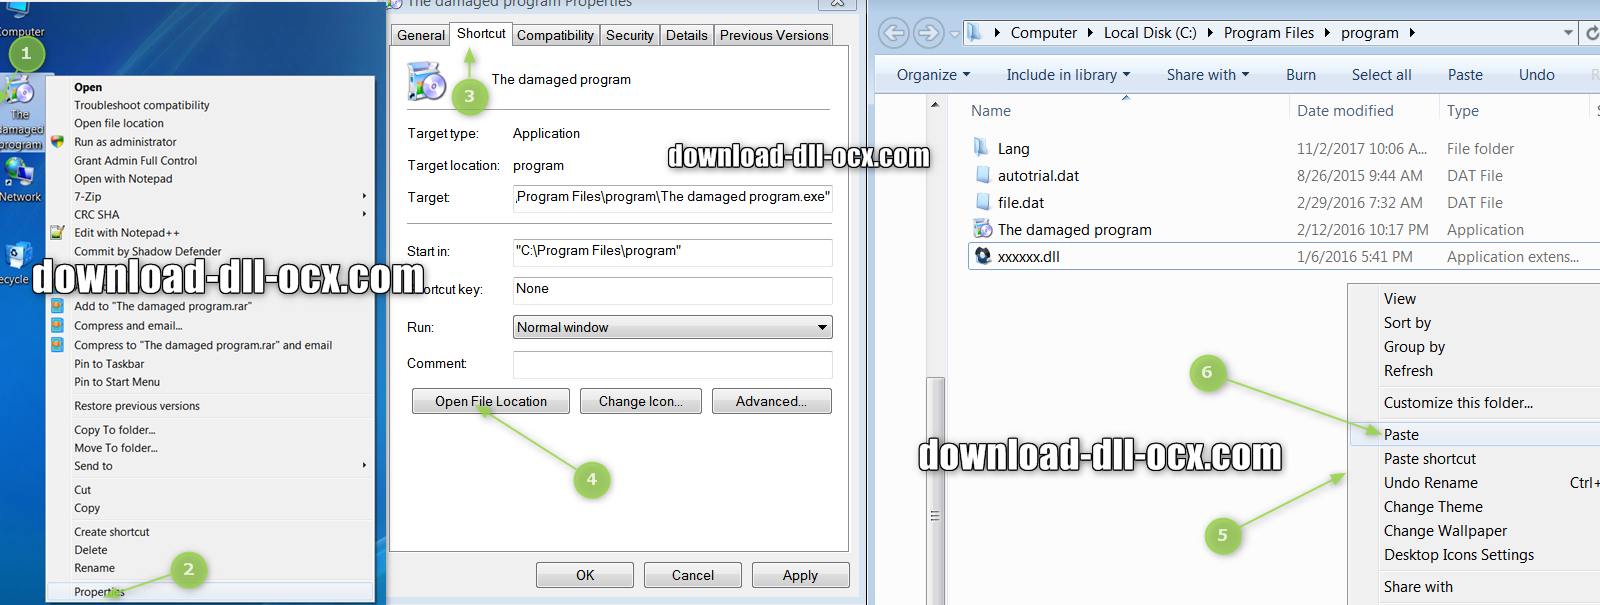 how to install Jpishare.dll file? for fix missing